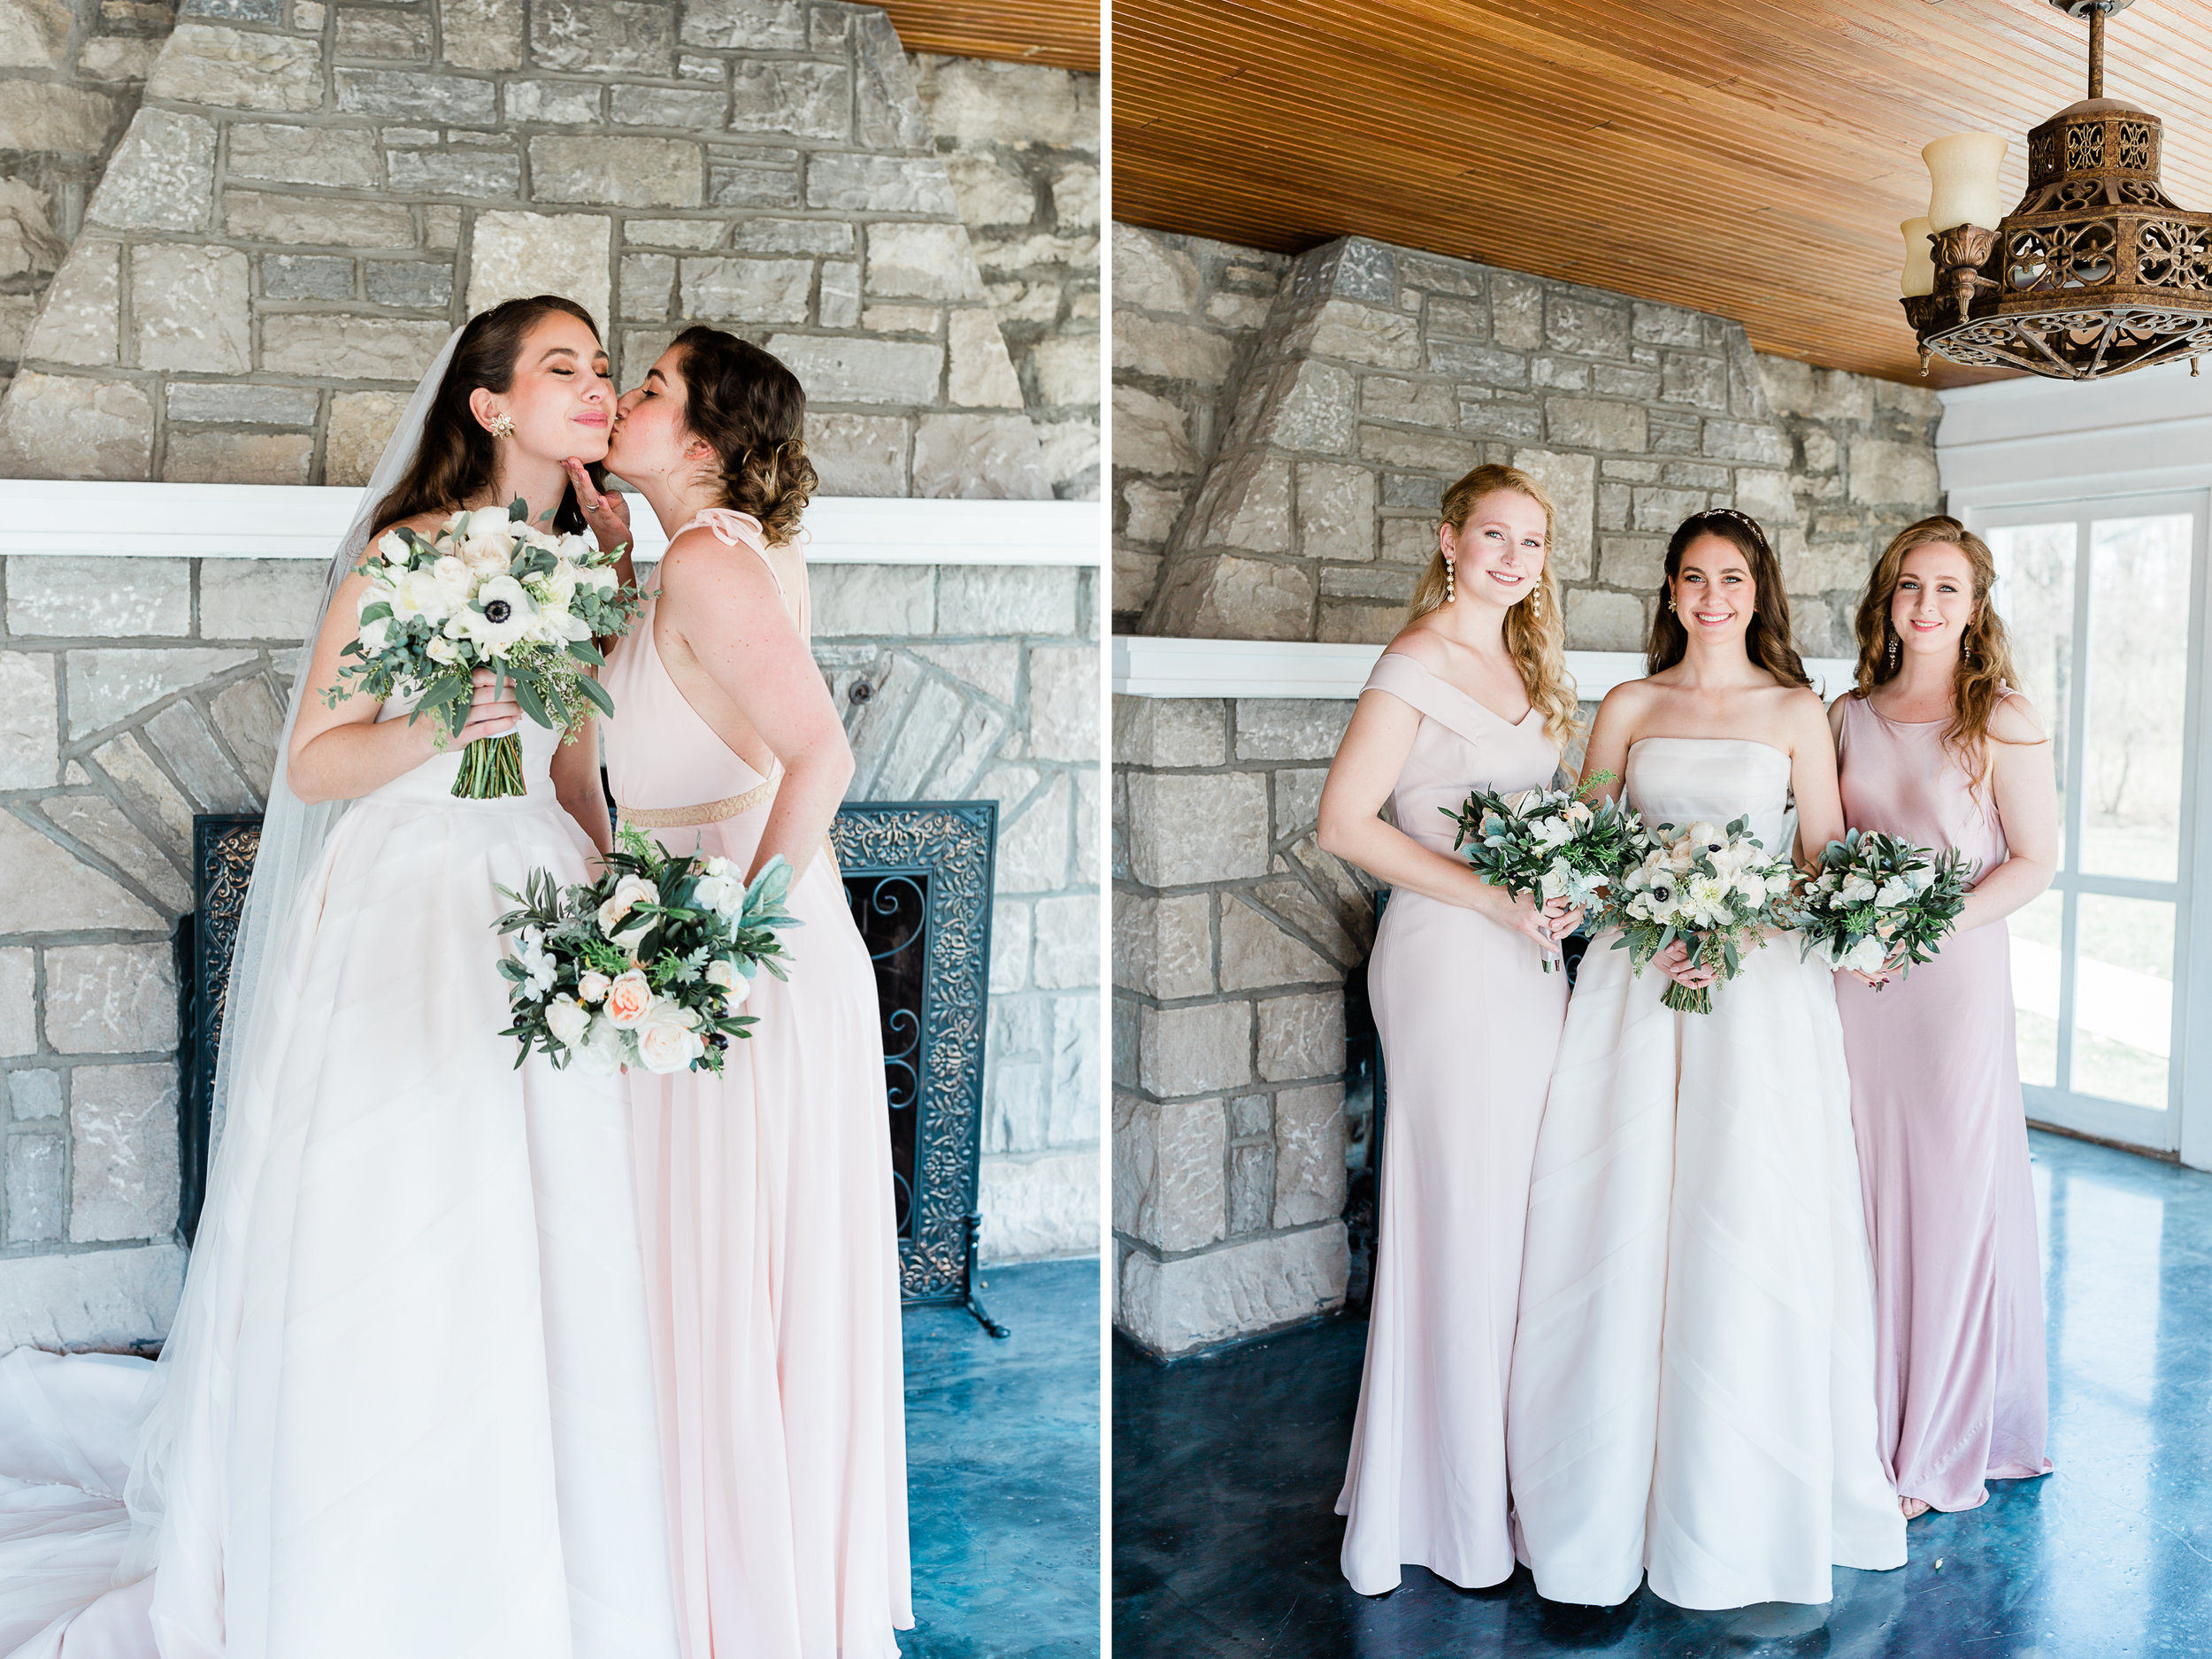 Dorothy_Louise_Photography_Amanda_Ryan_Stone_House_St_Charles_Wedding_Collage22.jpg